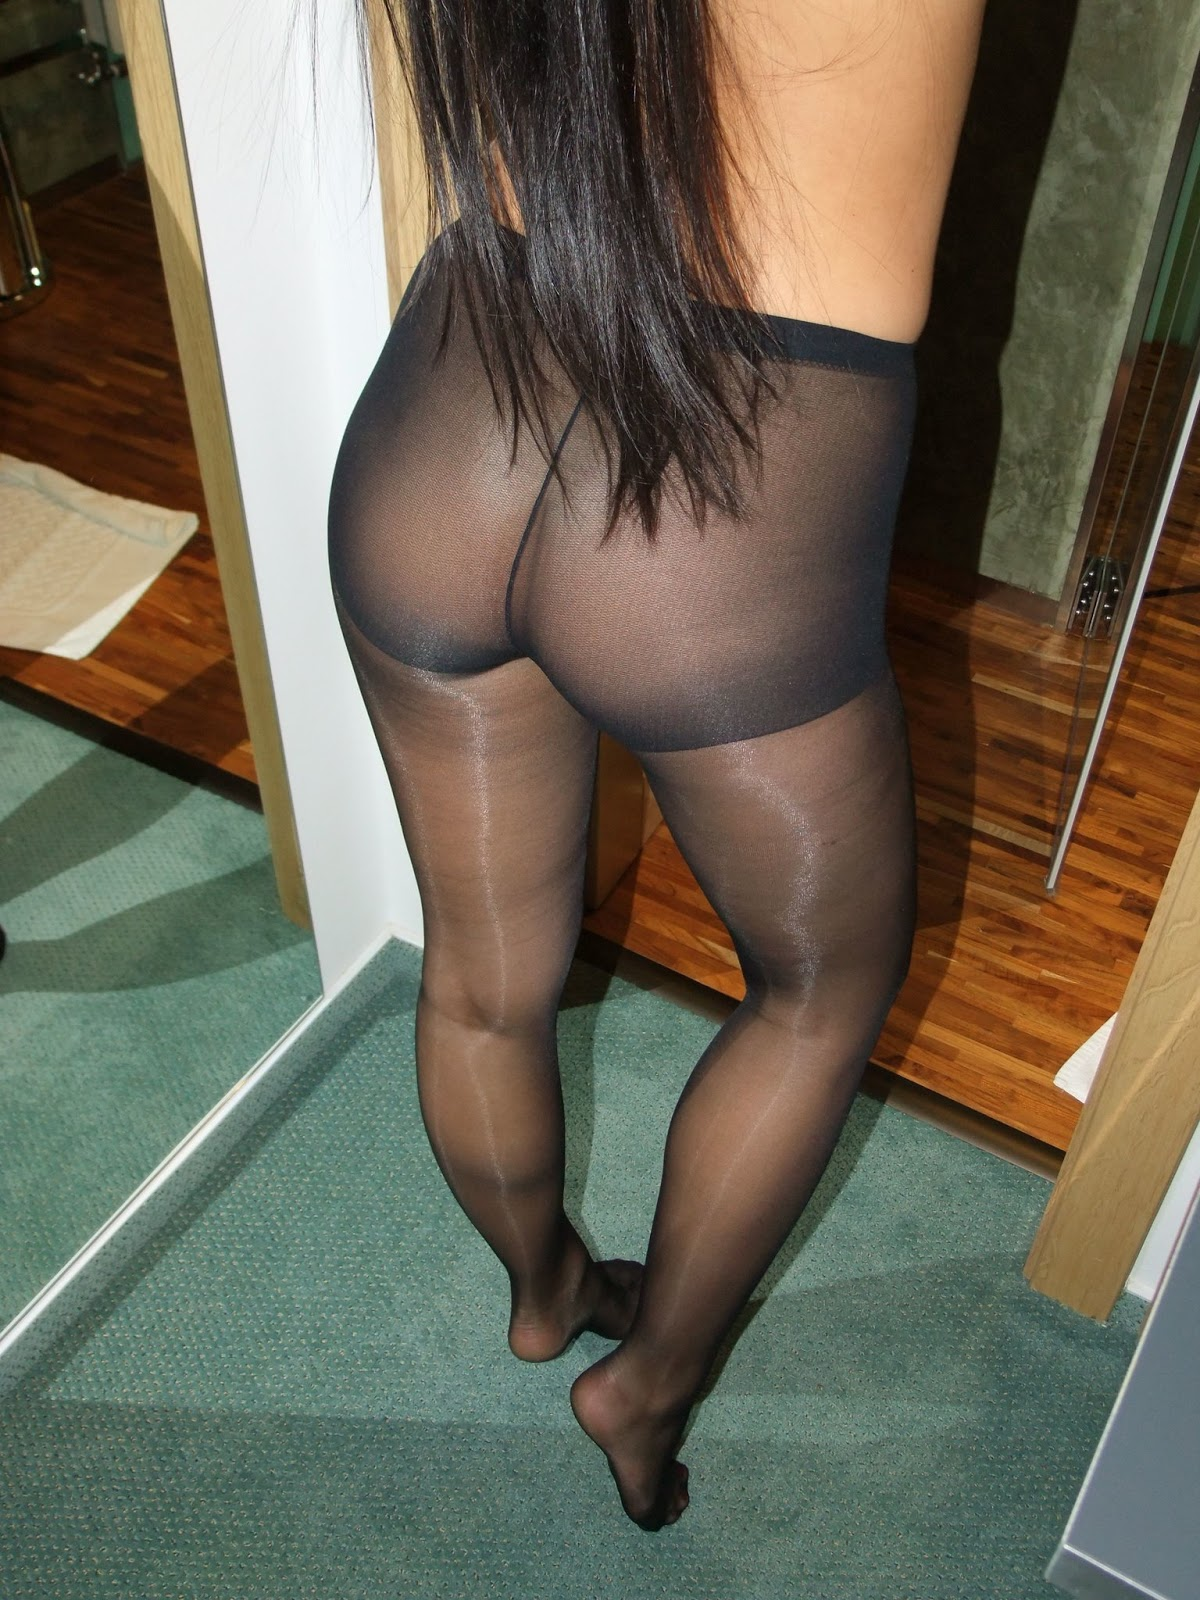 Amateur Pantyhose Videos